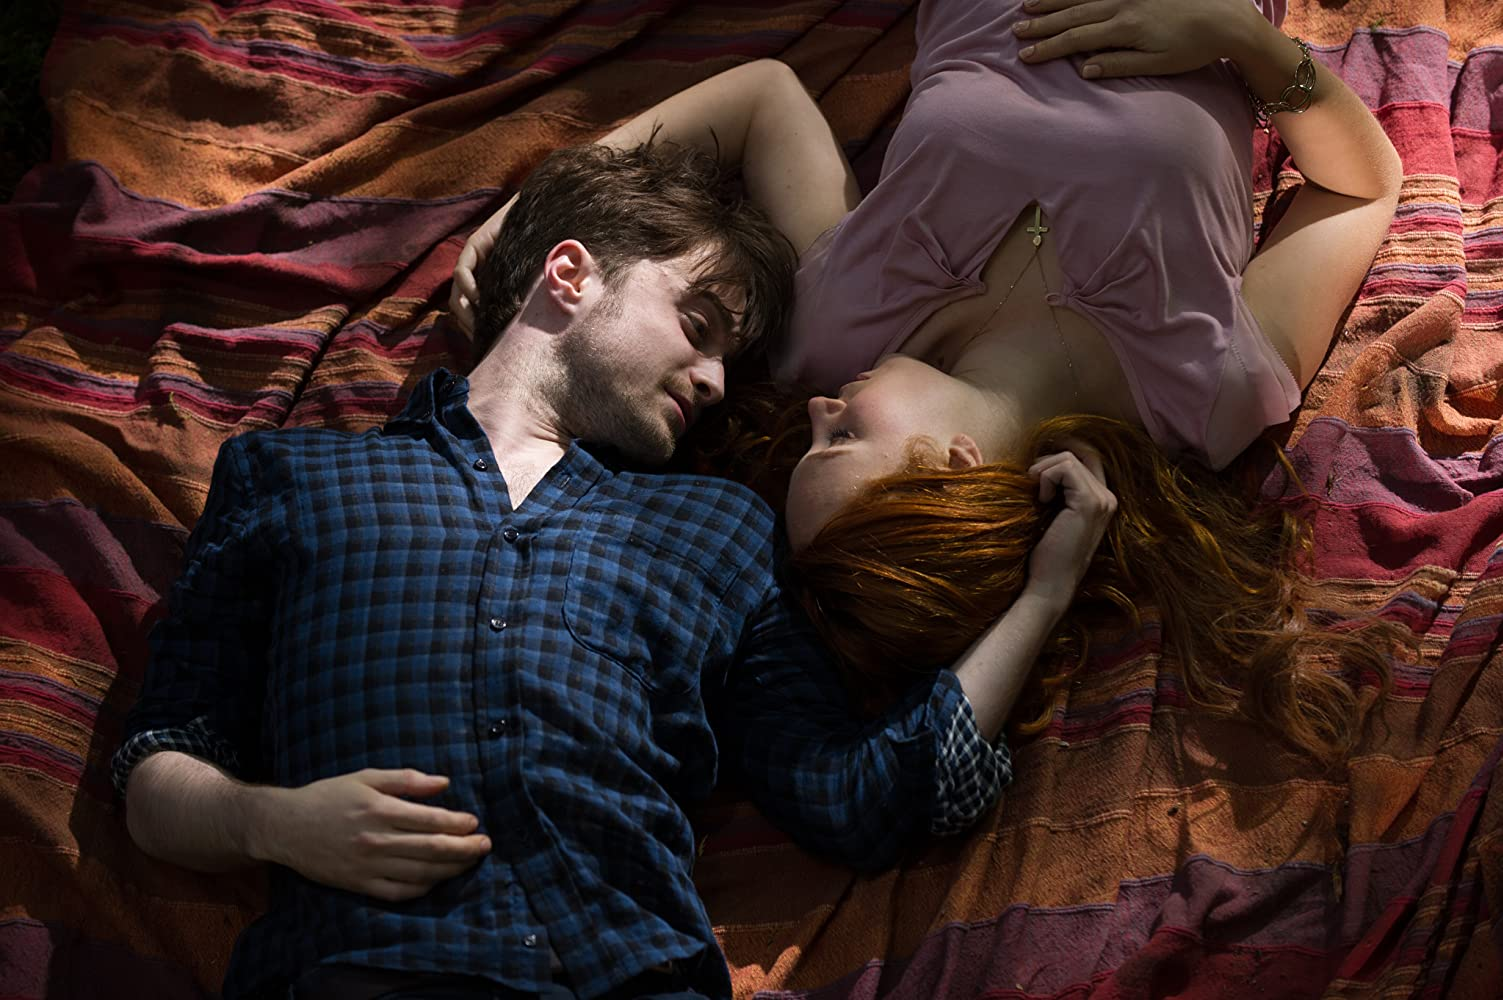 Daniel Radcliffe and Juno Temple in Horns (2013)